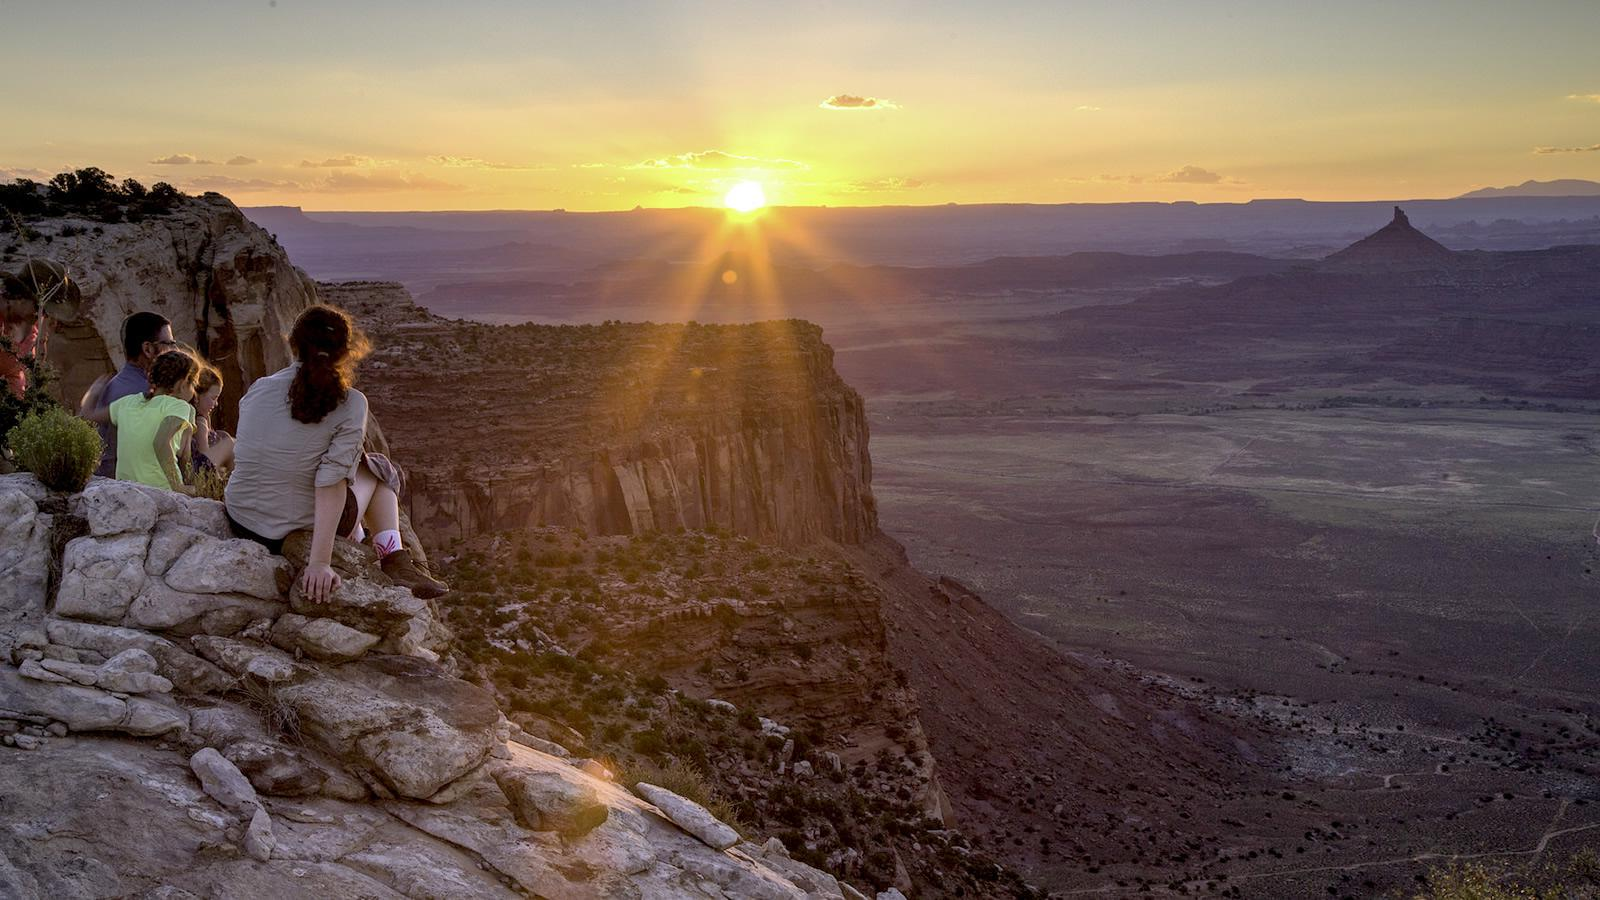 <h4>OUR PUBLIC LANDS</h4><h5>Goal: We need to defend our national monuments and other public lands 从 attempts to remove their protections.</h5><em>Bob Wick / BLM</em>